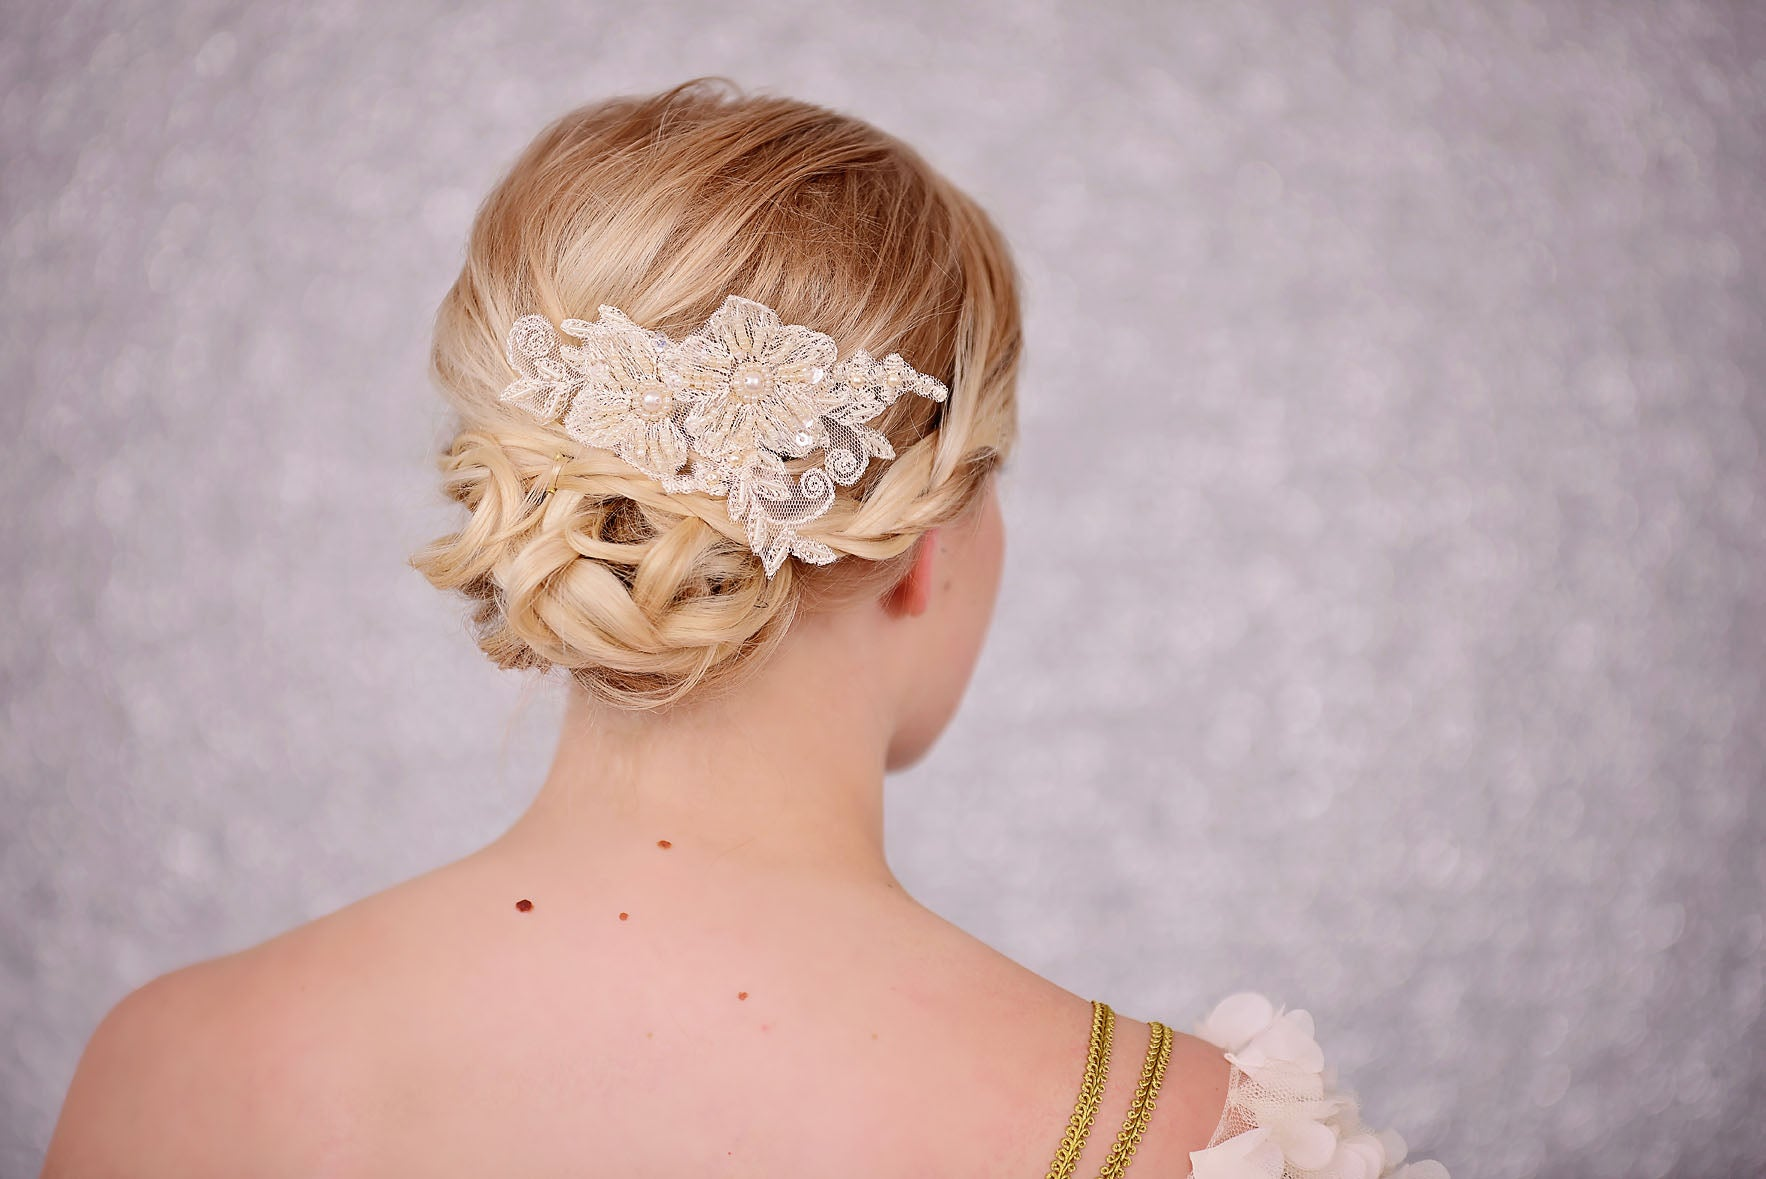 bridal & wedding hair accessories, veils, shoes and jewellery